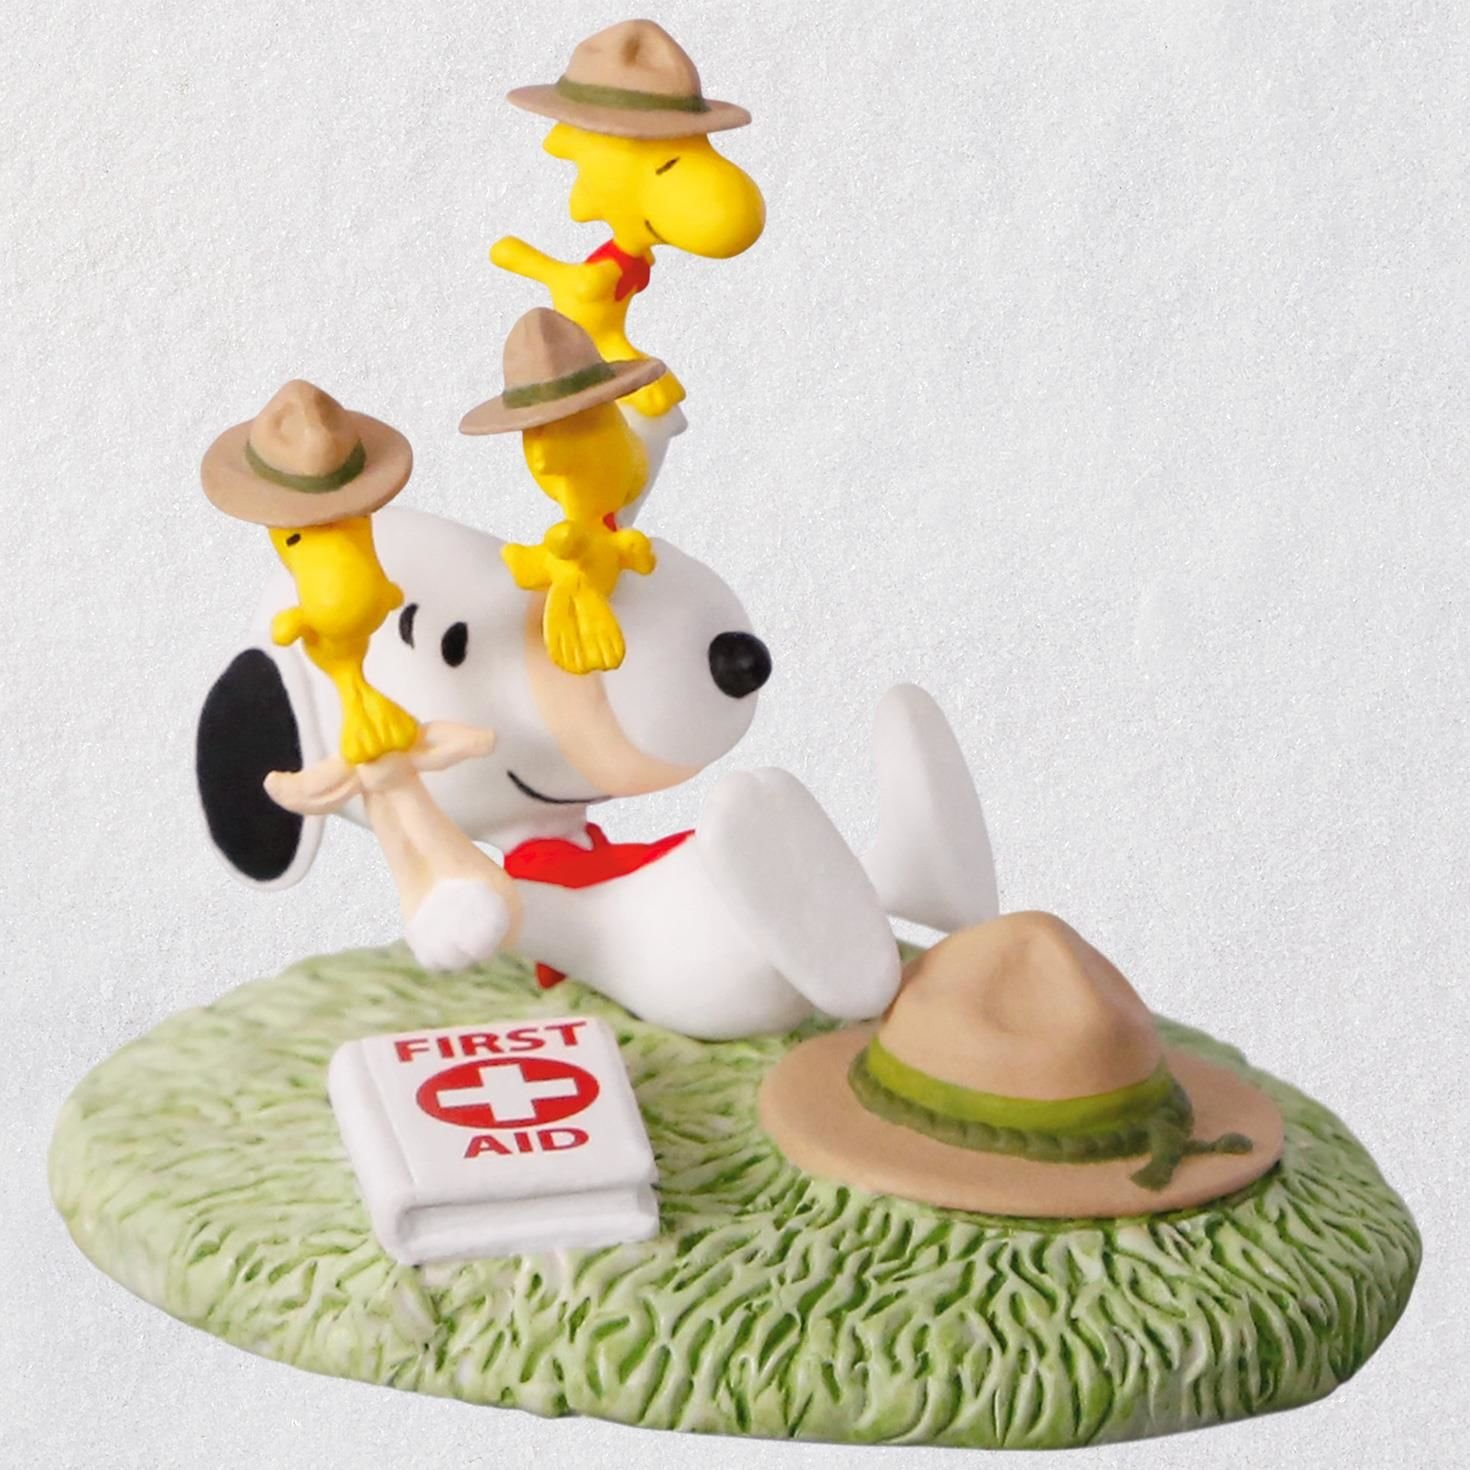 Hallmark Keepsake Christmas Ornament 2018 Year Dated, The Peanuts Gang First Aid Lessons